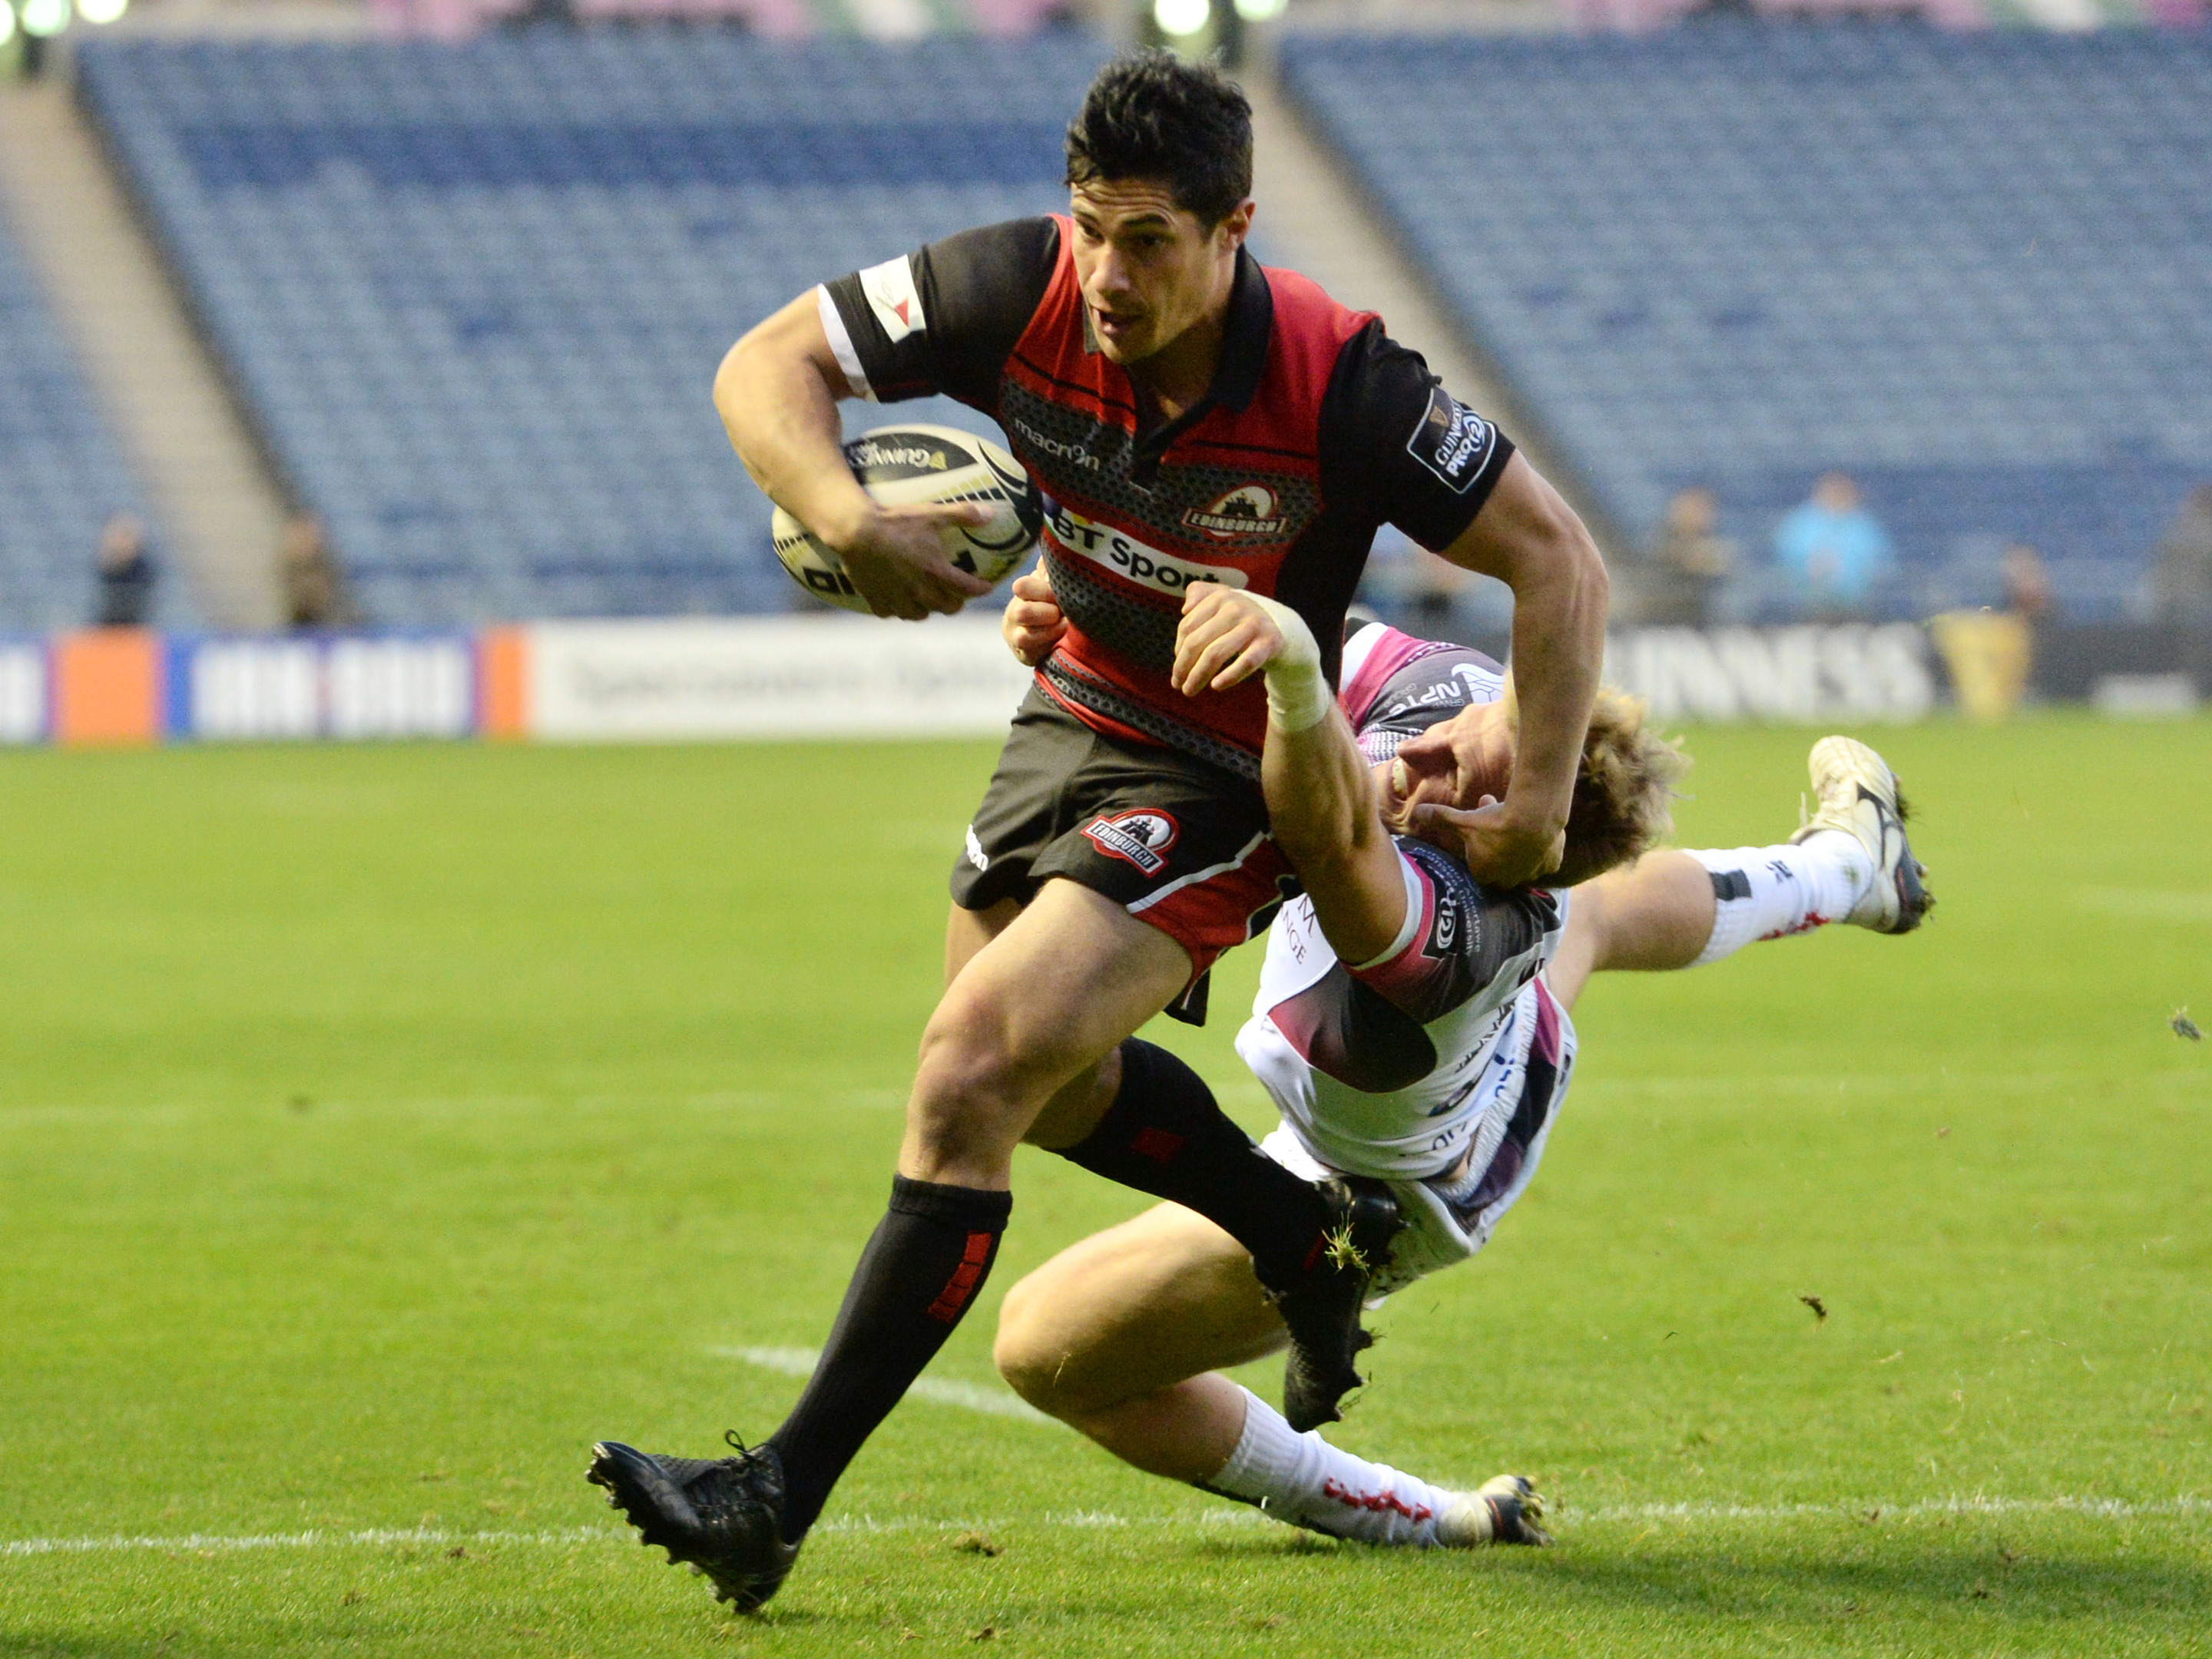 Phil Burleigh thinks Edinburgh's attacking style will be illustrated in FRiday's clash weith Leinster.